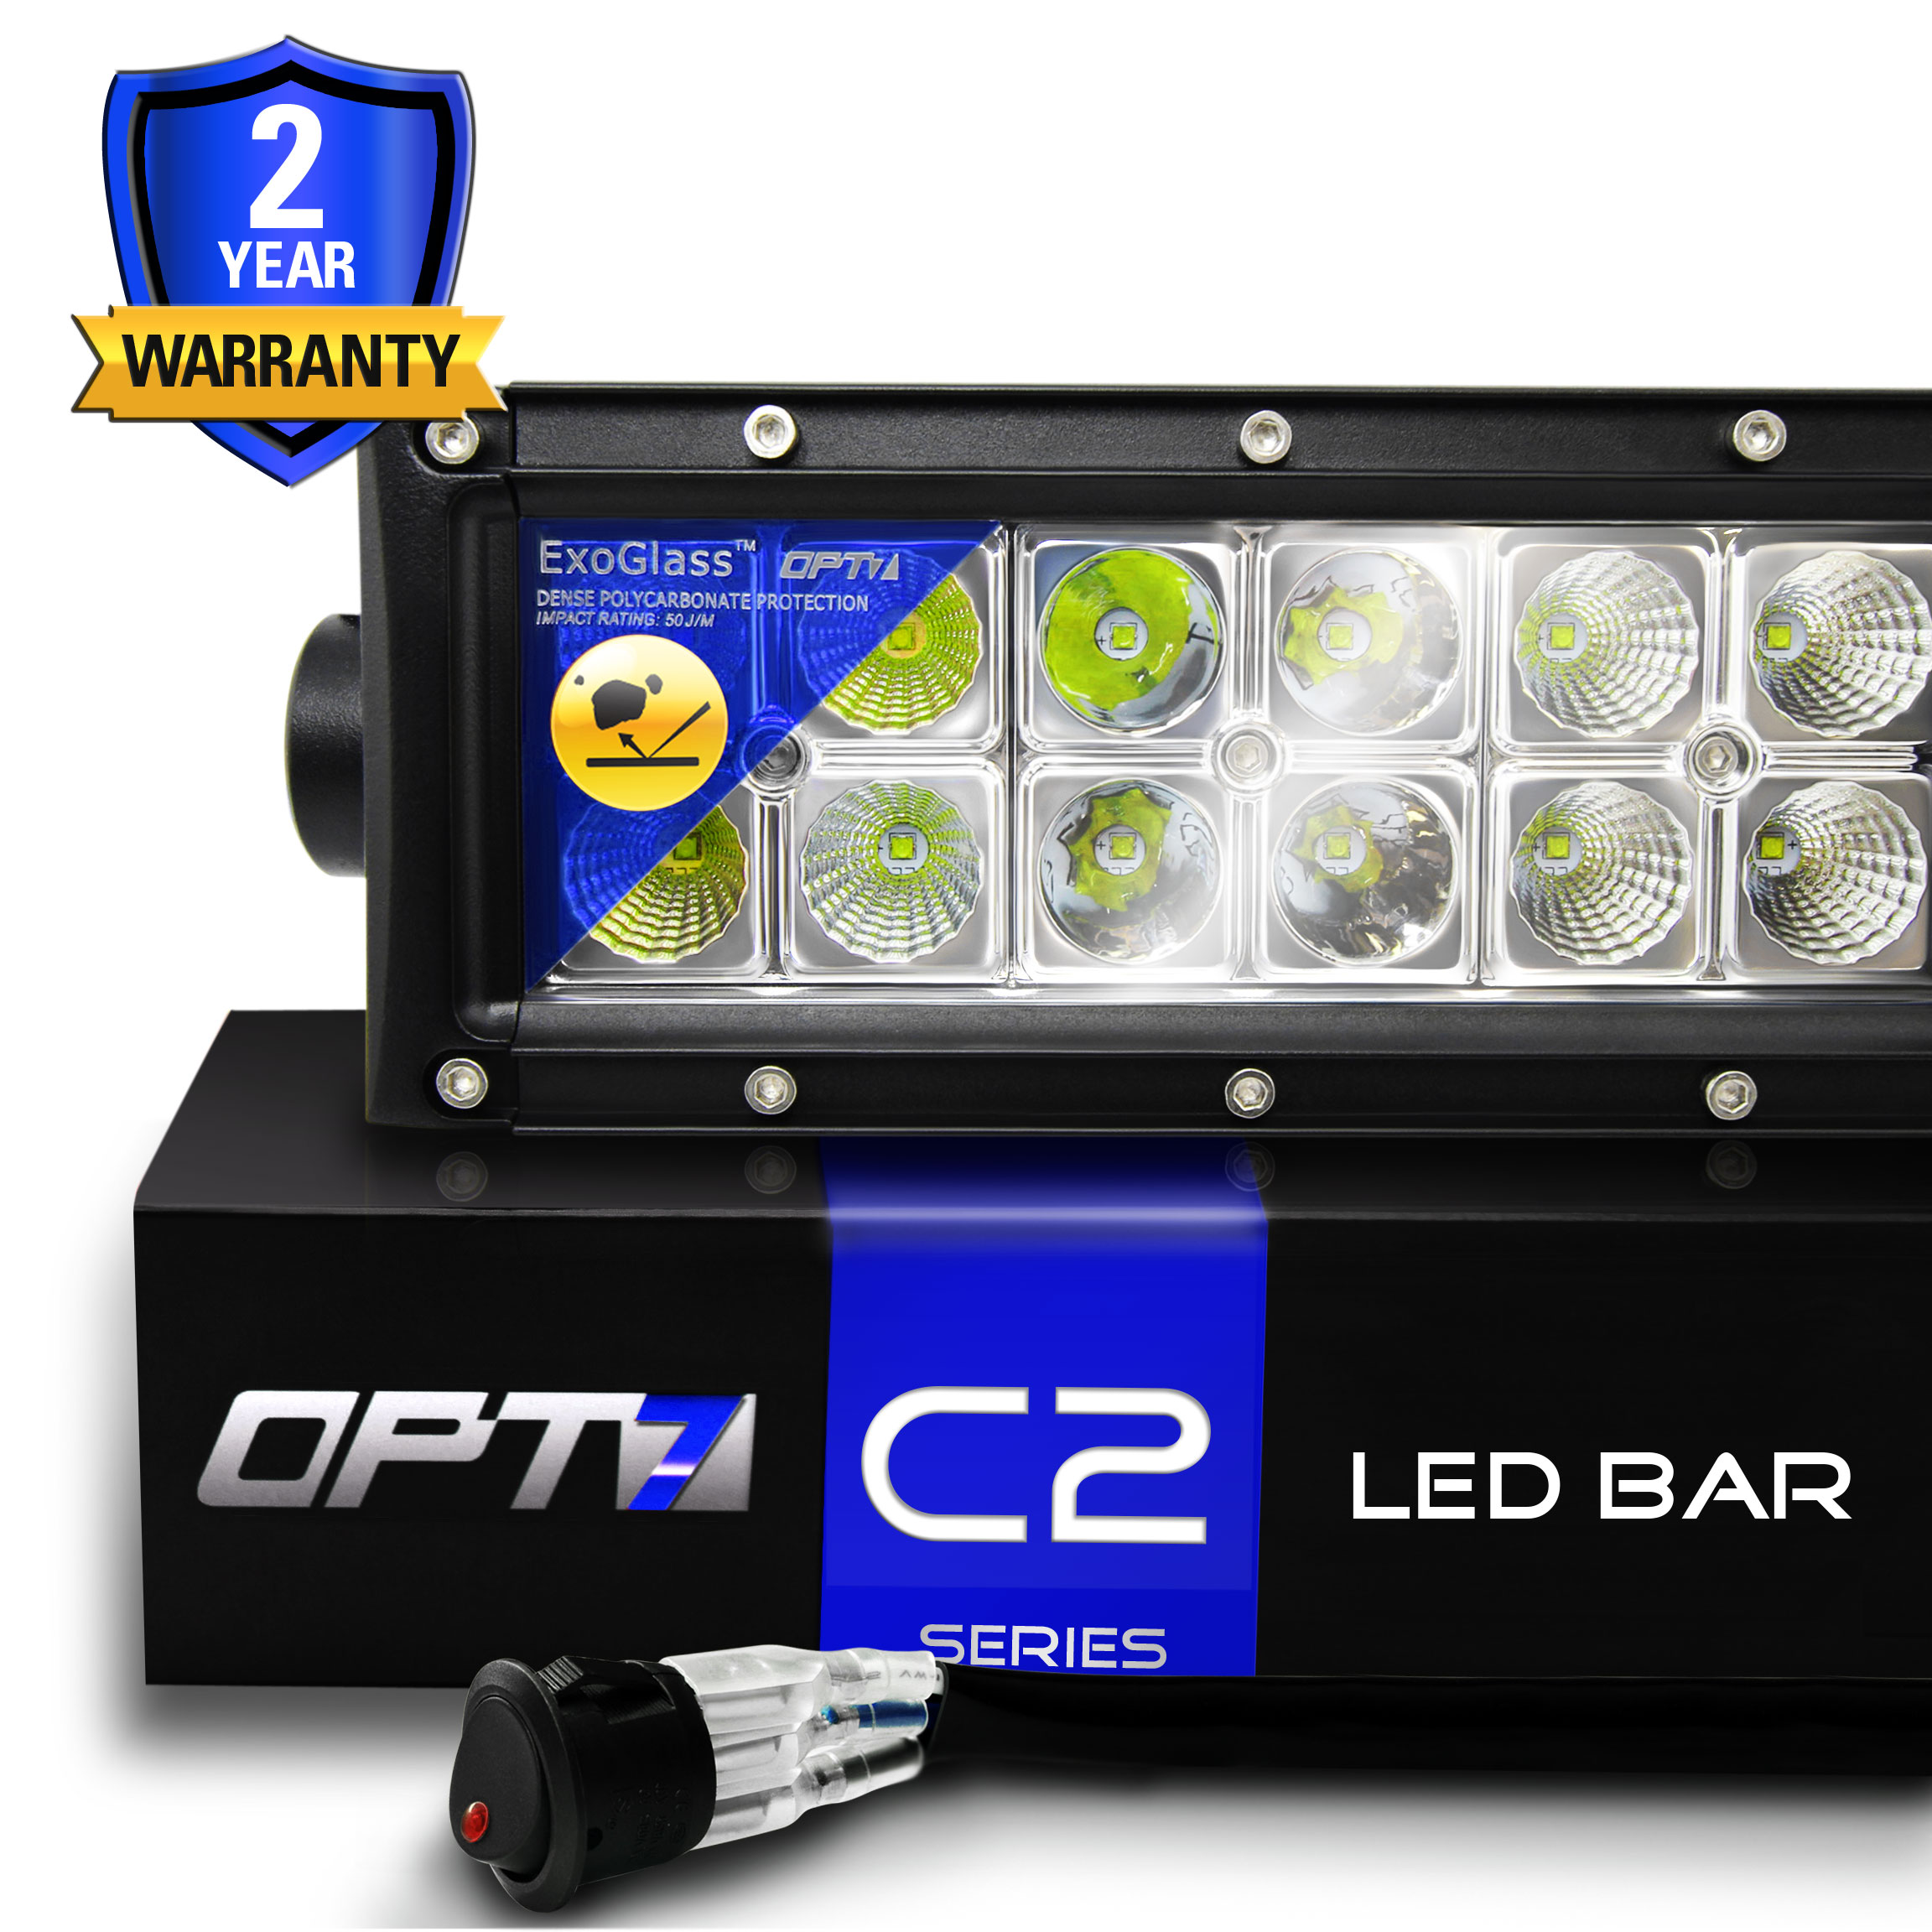 C2 switch Var opt7 automotive lighting ebay stores  at panicattacktreatment.co